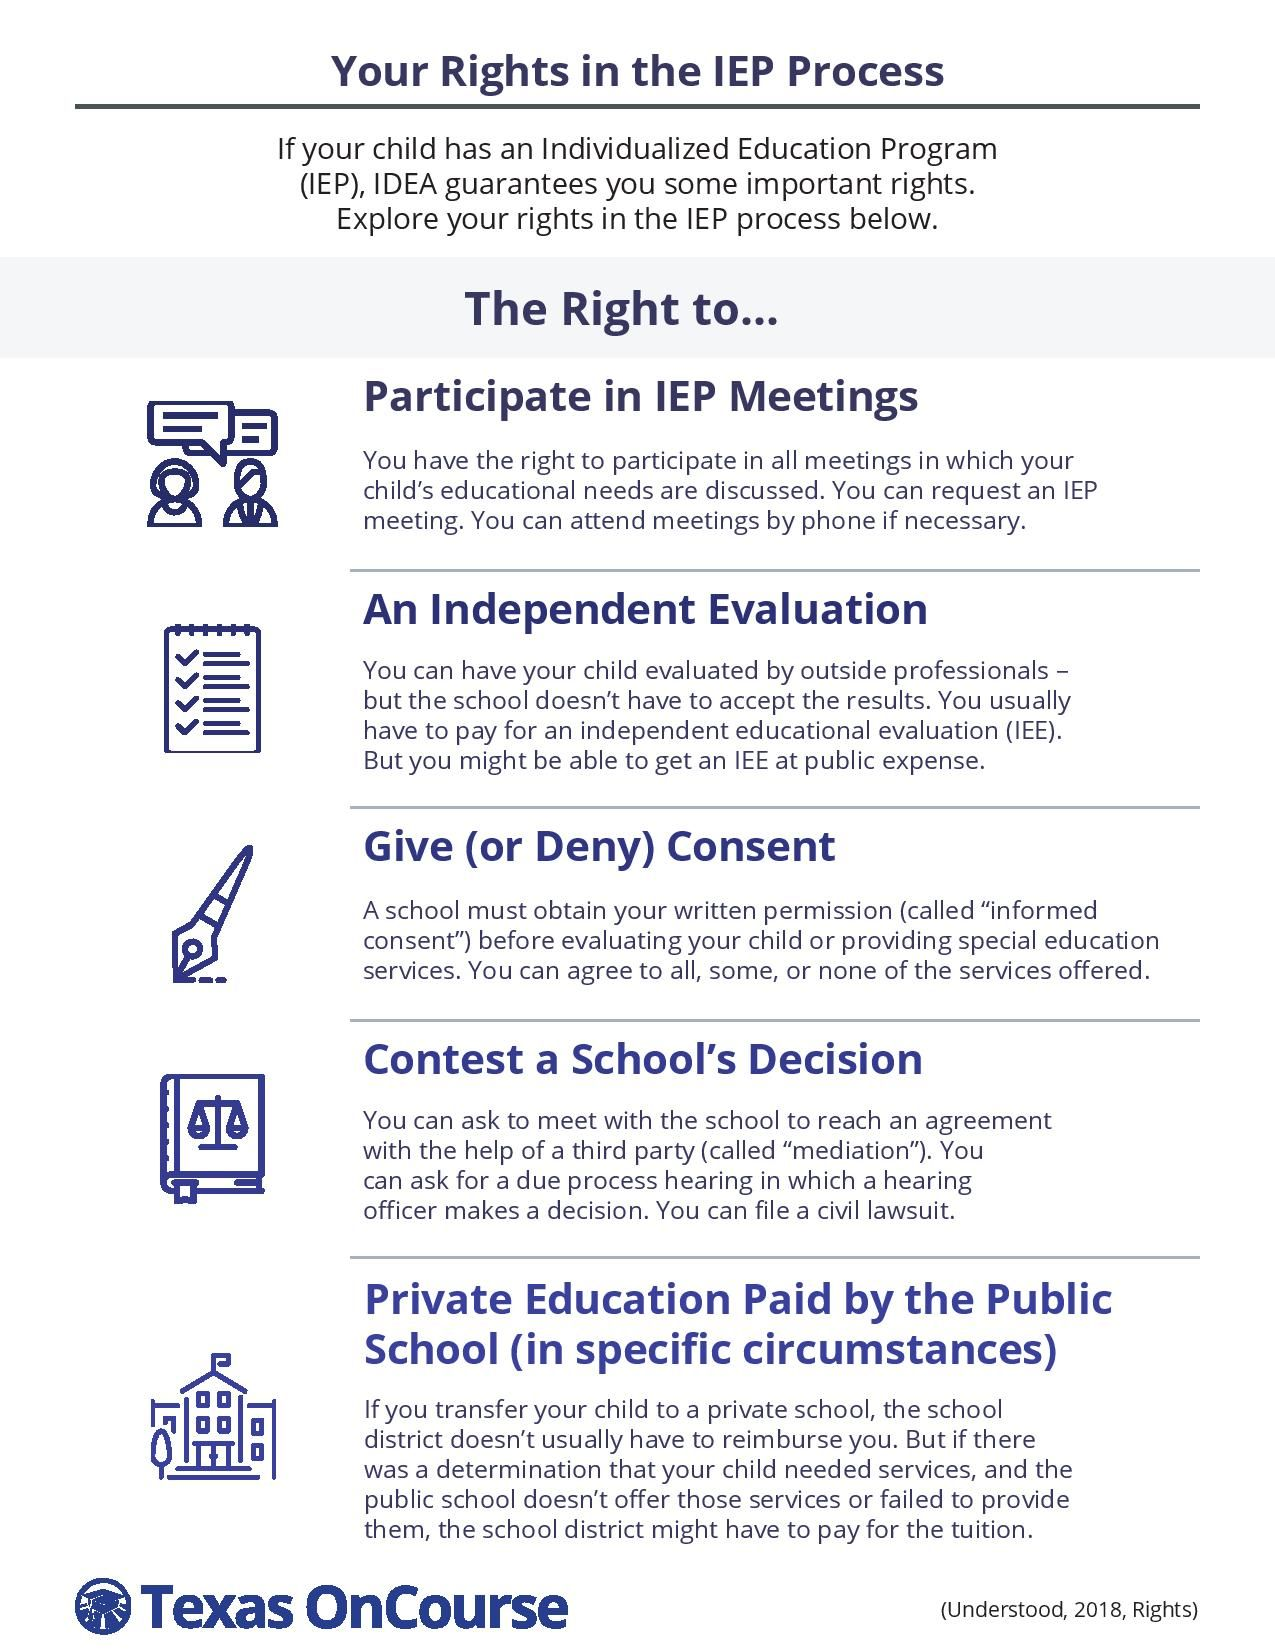 Your Rights in the IEP Process: Click link for PDF Download